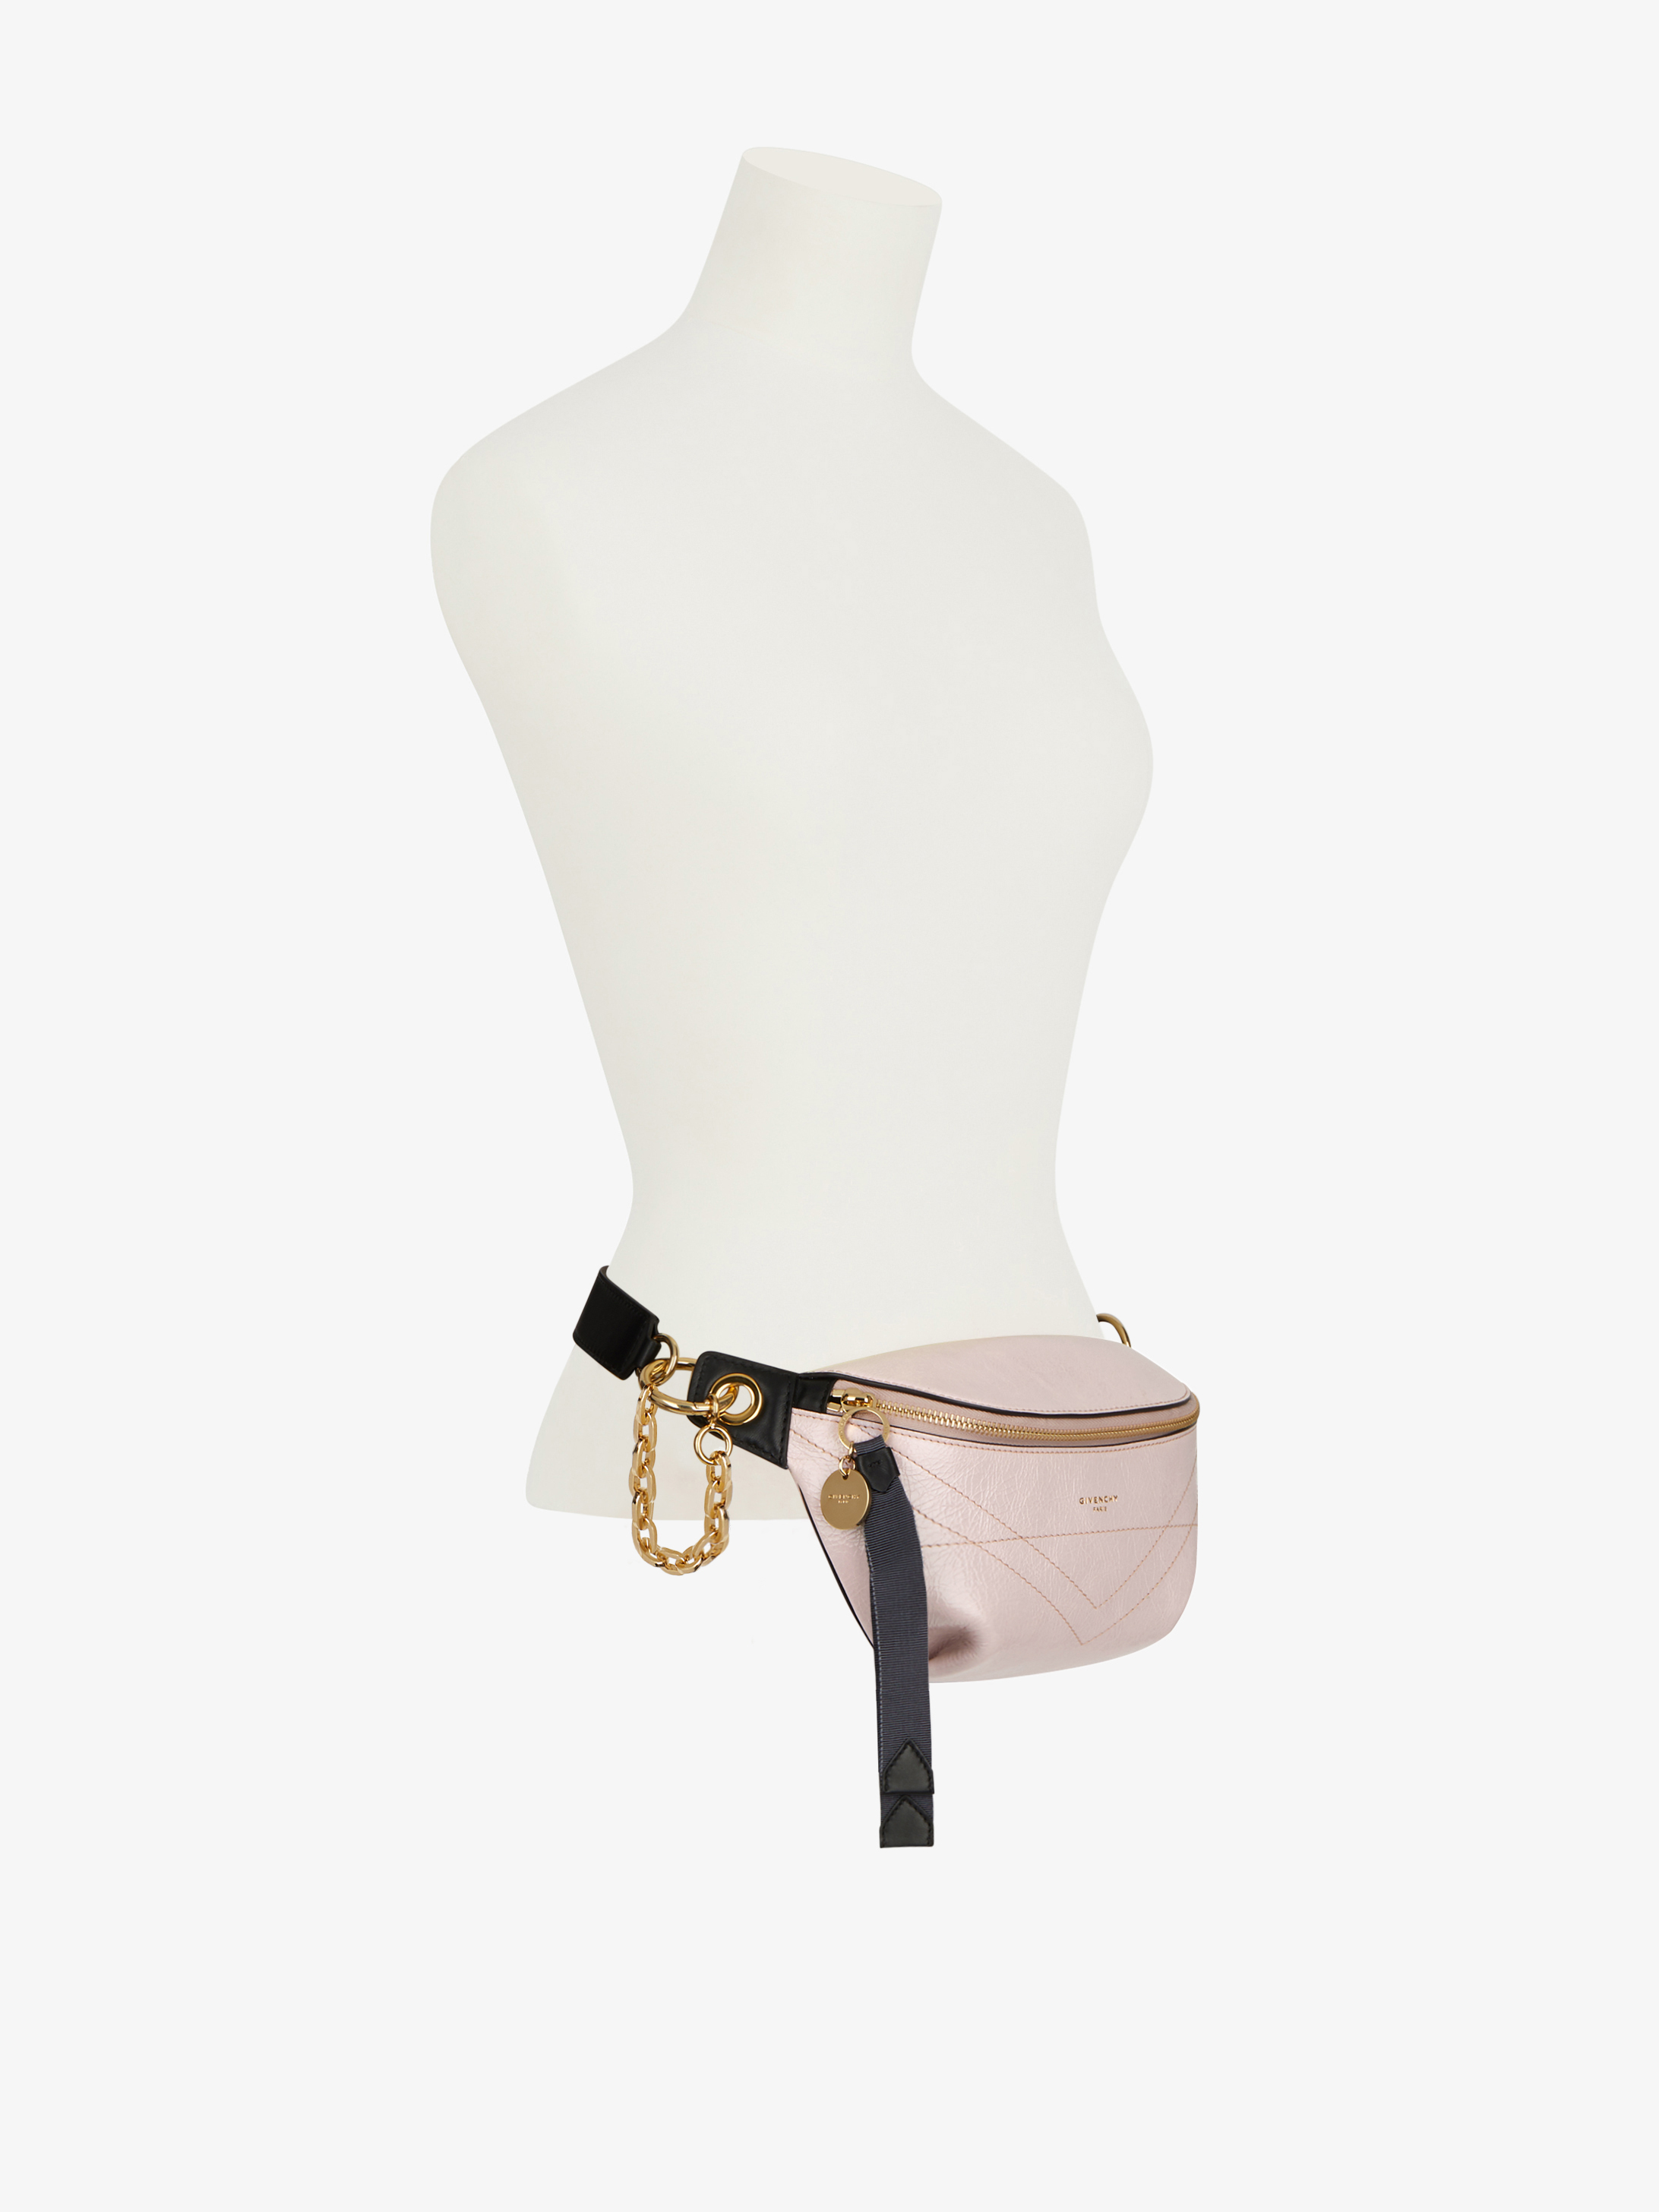 ID bum bag in crackling leather